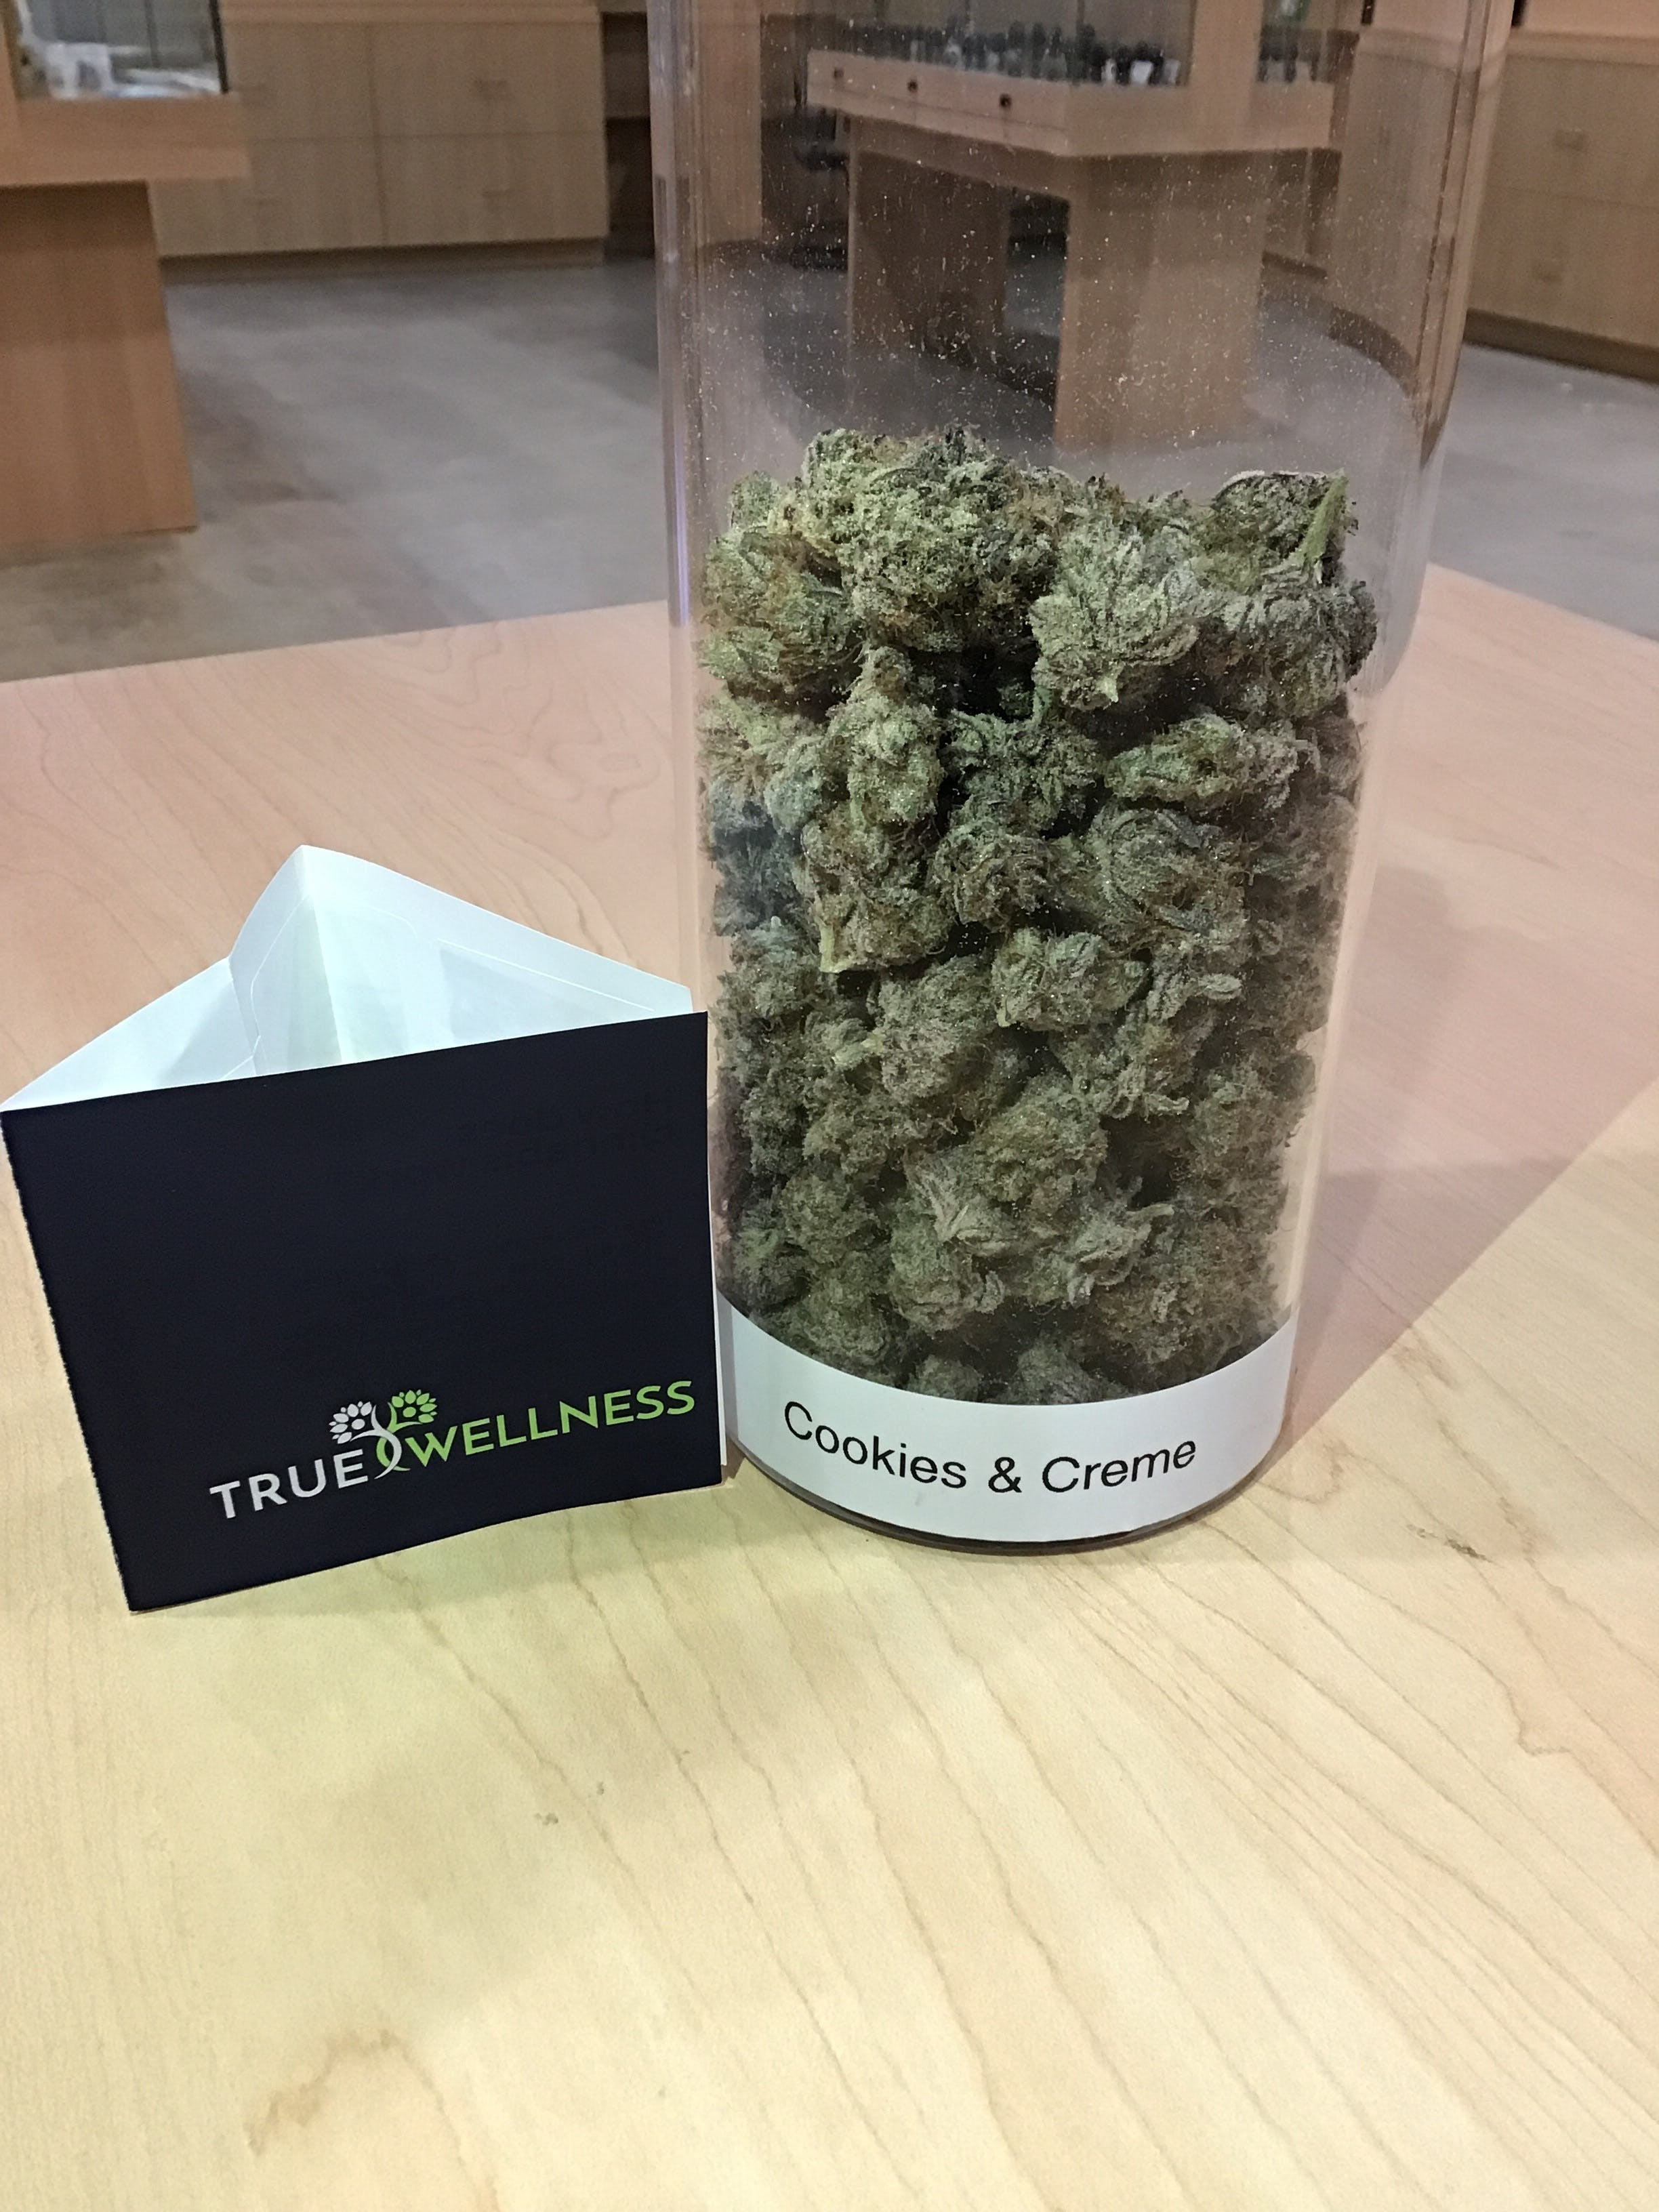 marijuana-dispensaries-226-s-philadelphia-blvd-aberdeen-cookies-a-creme-by-culta